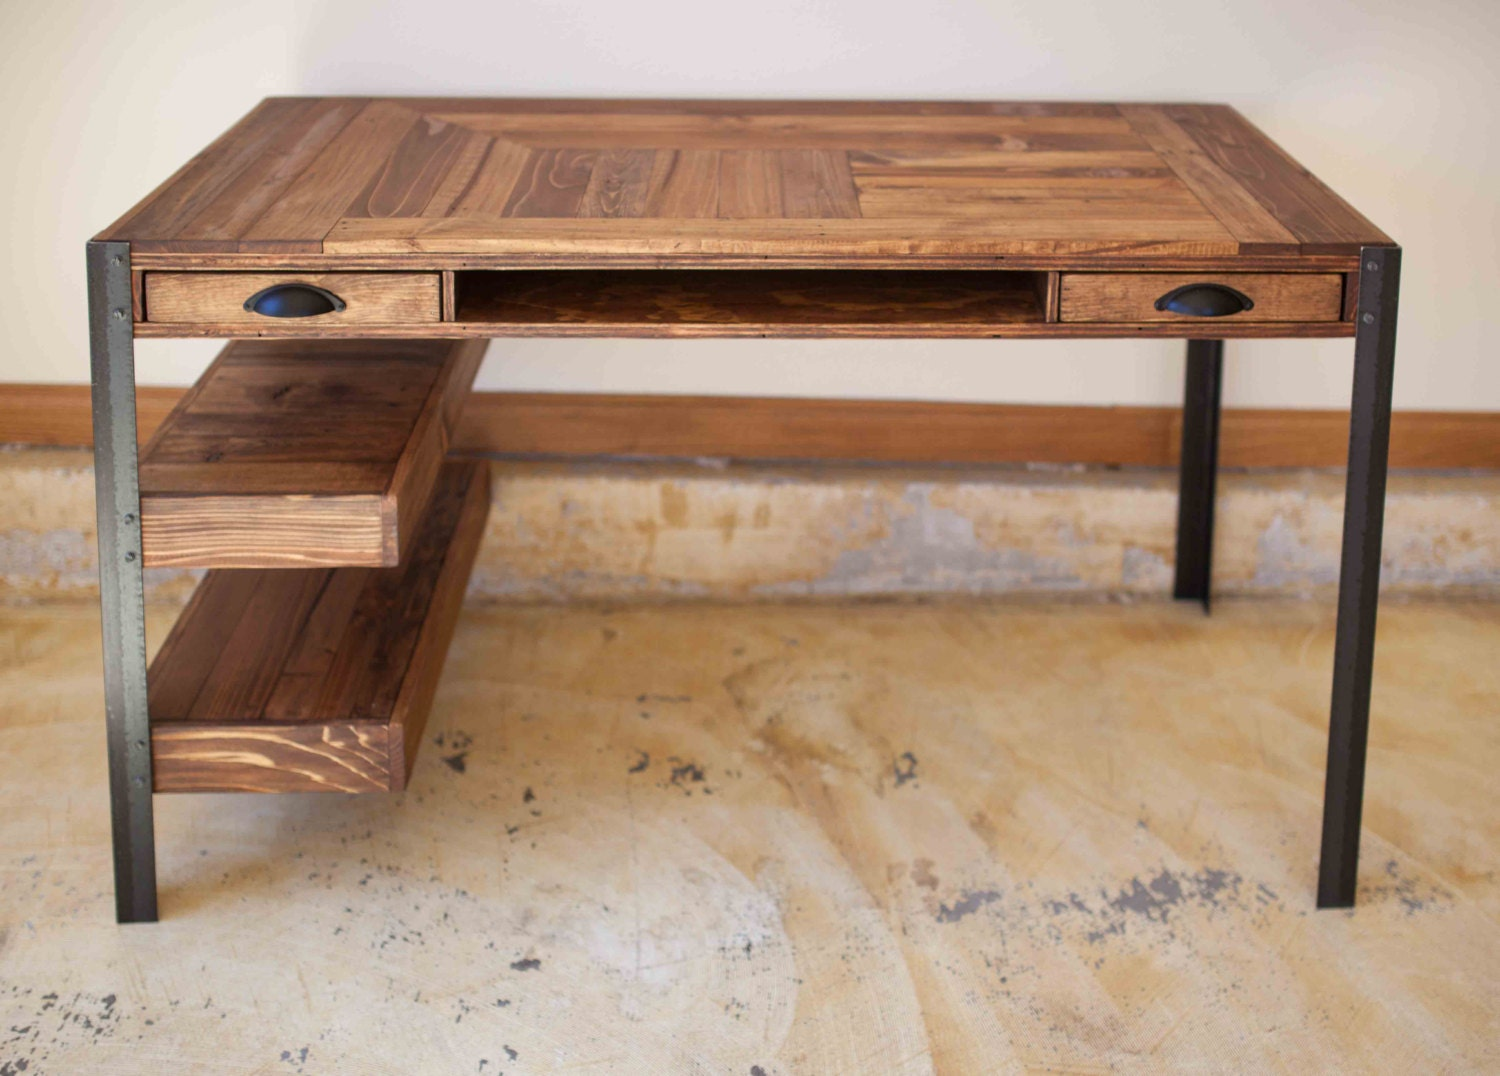 Pallet Wood Desk with 2 Drawers Center Shelf and 2 Lower